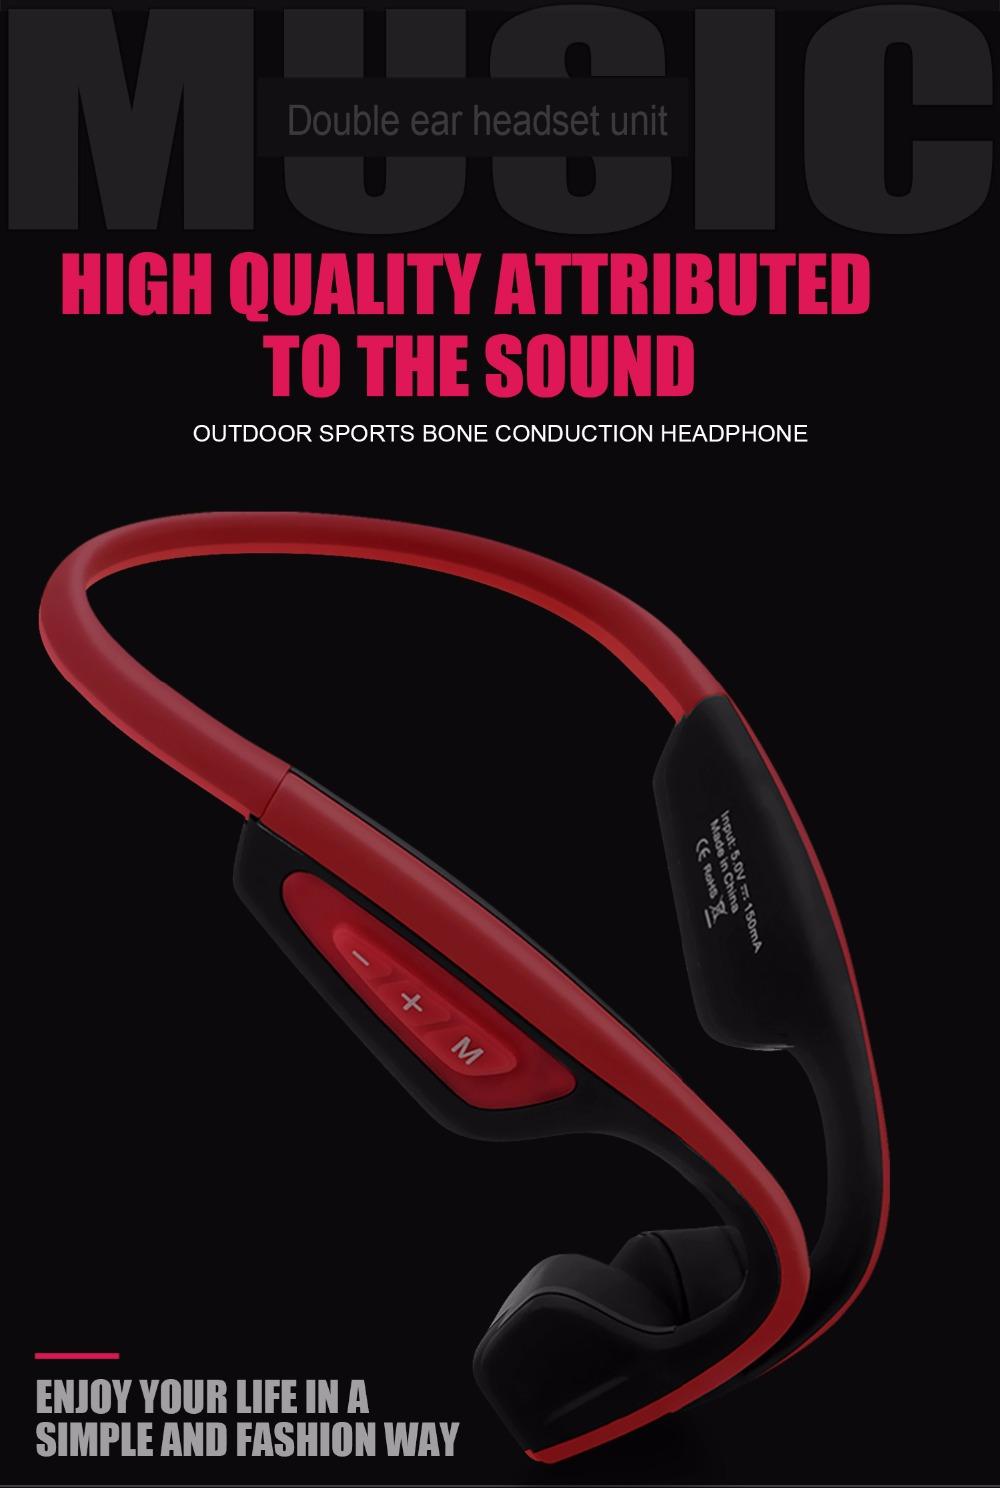 S.Wear Bluetooth Bone Conduction Headset Wireless Sports Headphones Handsfree Phone Calls Music Earphones LF-19 With Box 3 Color